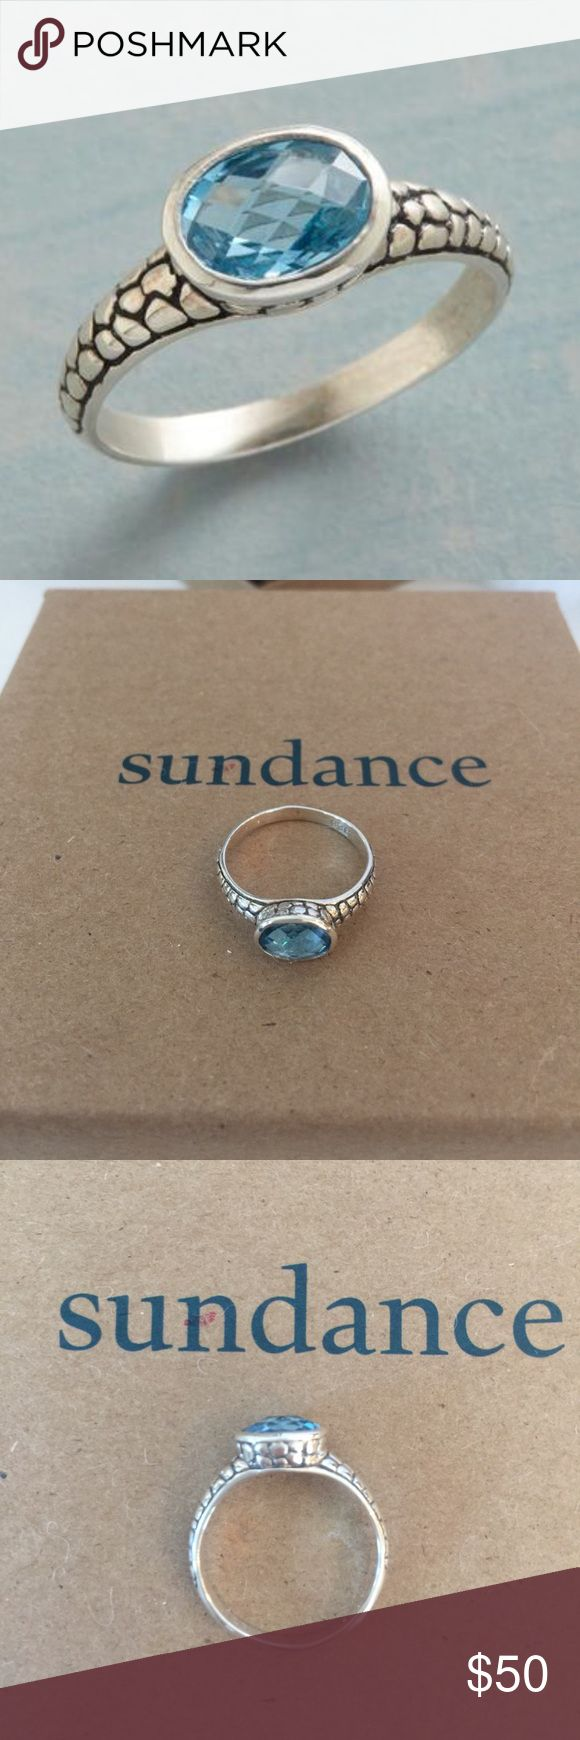 NWT Sundance Size 6.5 Brazilia Ring. NWT- Size 6.5 Brazilia Ring from Sundance Catalog. Silver, hand cast with a pebbled pattern, holds a blue topaz faceted to bring out its brilliance. Exclusive. Sundance  Jewelry Rings